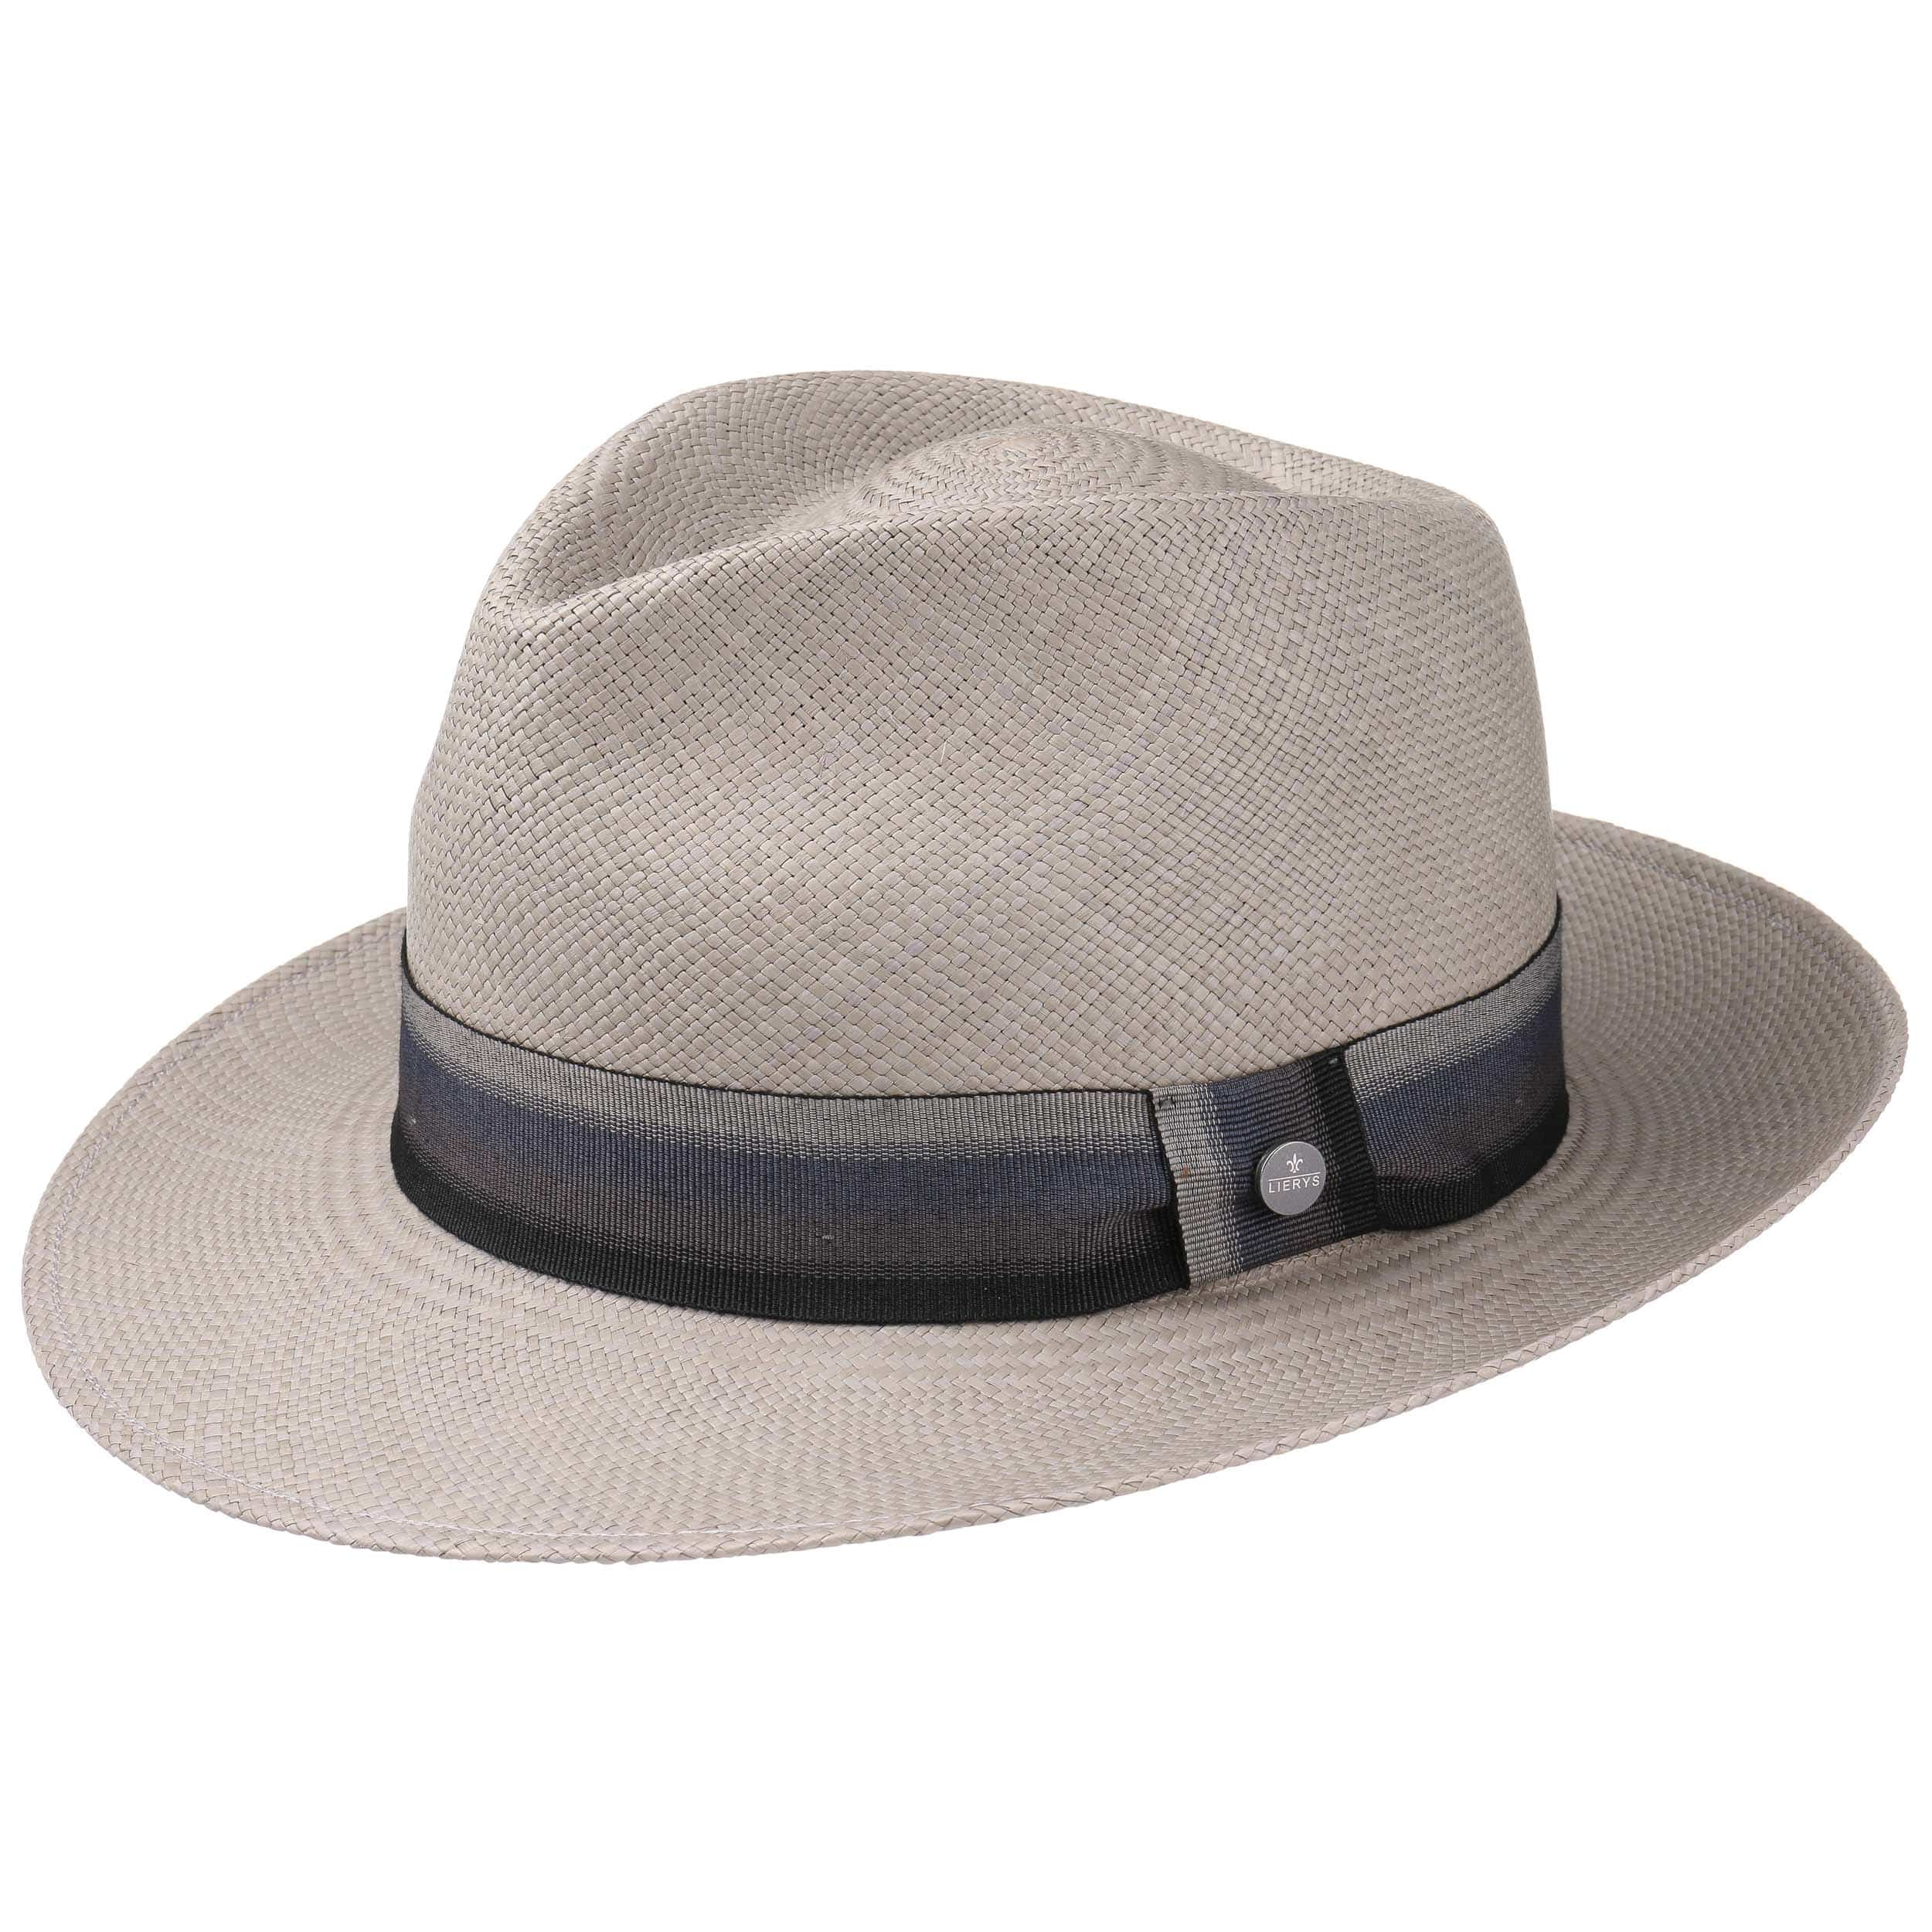 38838e4a911 ... Grey Paradise Bogart Panama Hat by Lierys - grey 4 ...